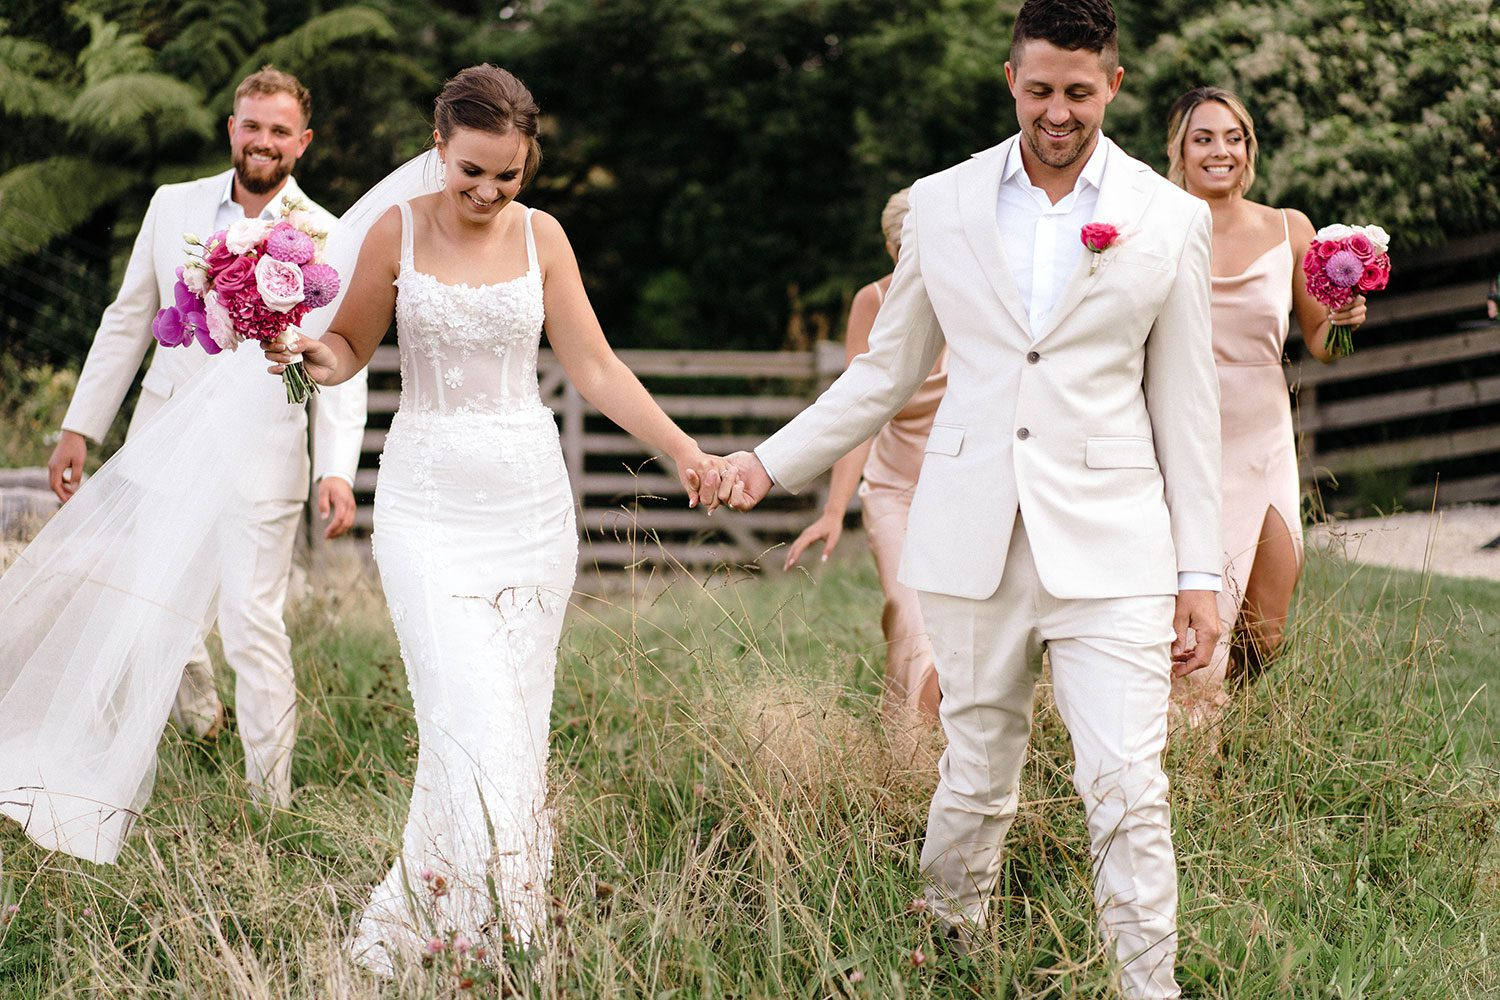 Bride wears bespoke E'More lace gown with boned bodice with hand beaded flower applique and full lace train by Auckland wedding dress maker Vinka designs - with groom and wedding party walking in field